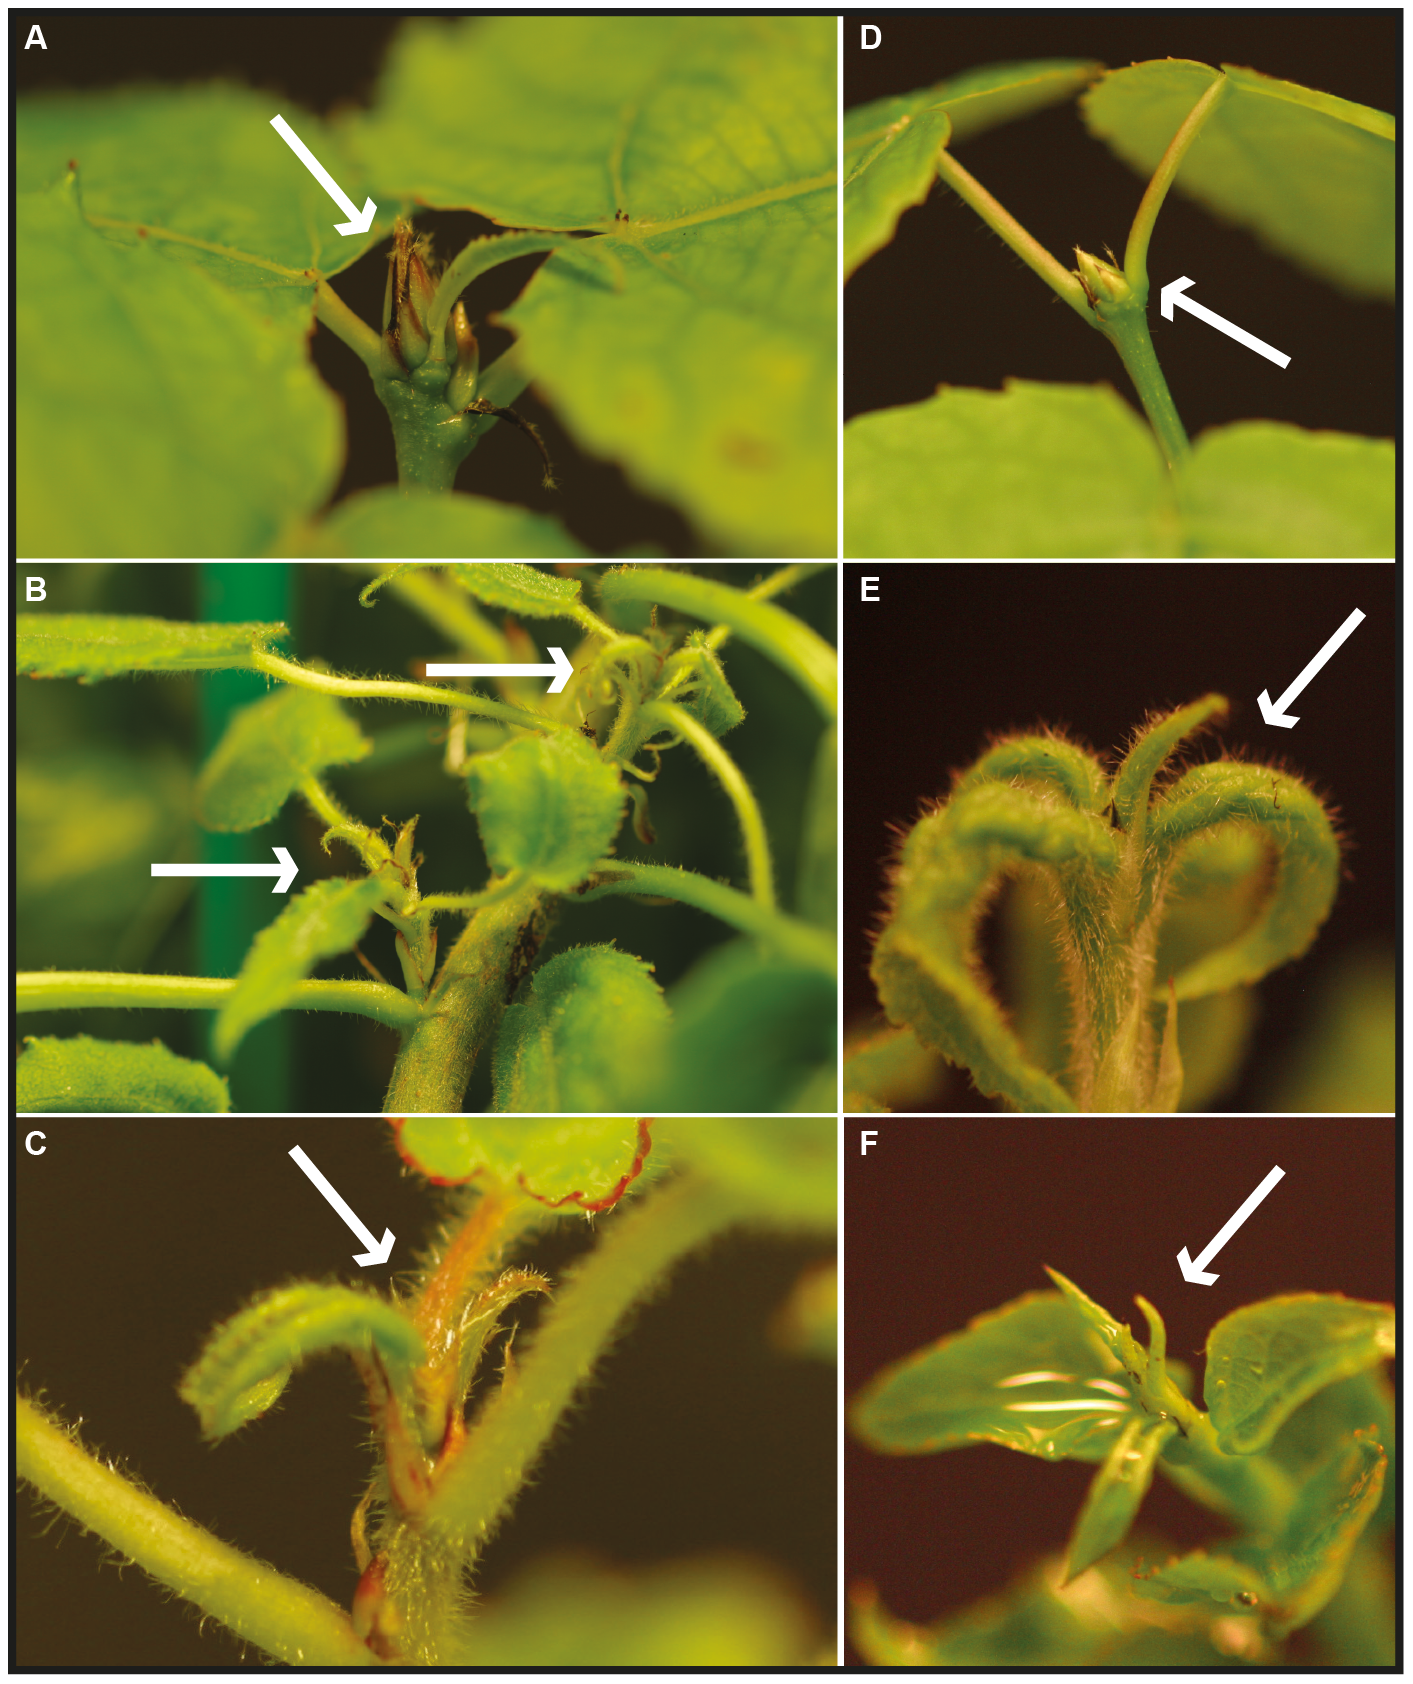 Bud formation in wild type, <i>AIL1</i> (<i>AIL1</i>oe), and <i>AIL3</i> (<i>AIL3</i>oe) overexpressing transgenic hybrid aspen plants after 6 weeks in short days.